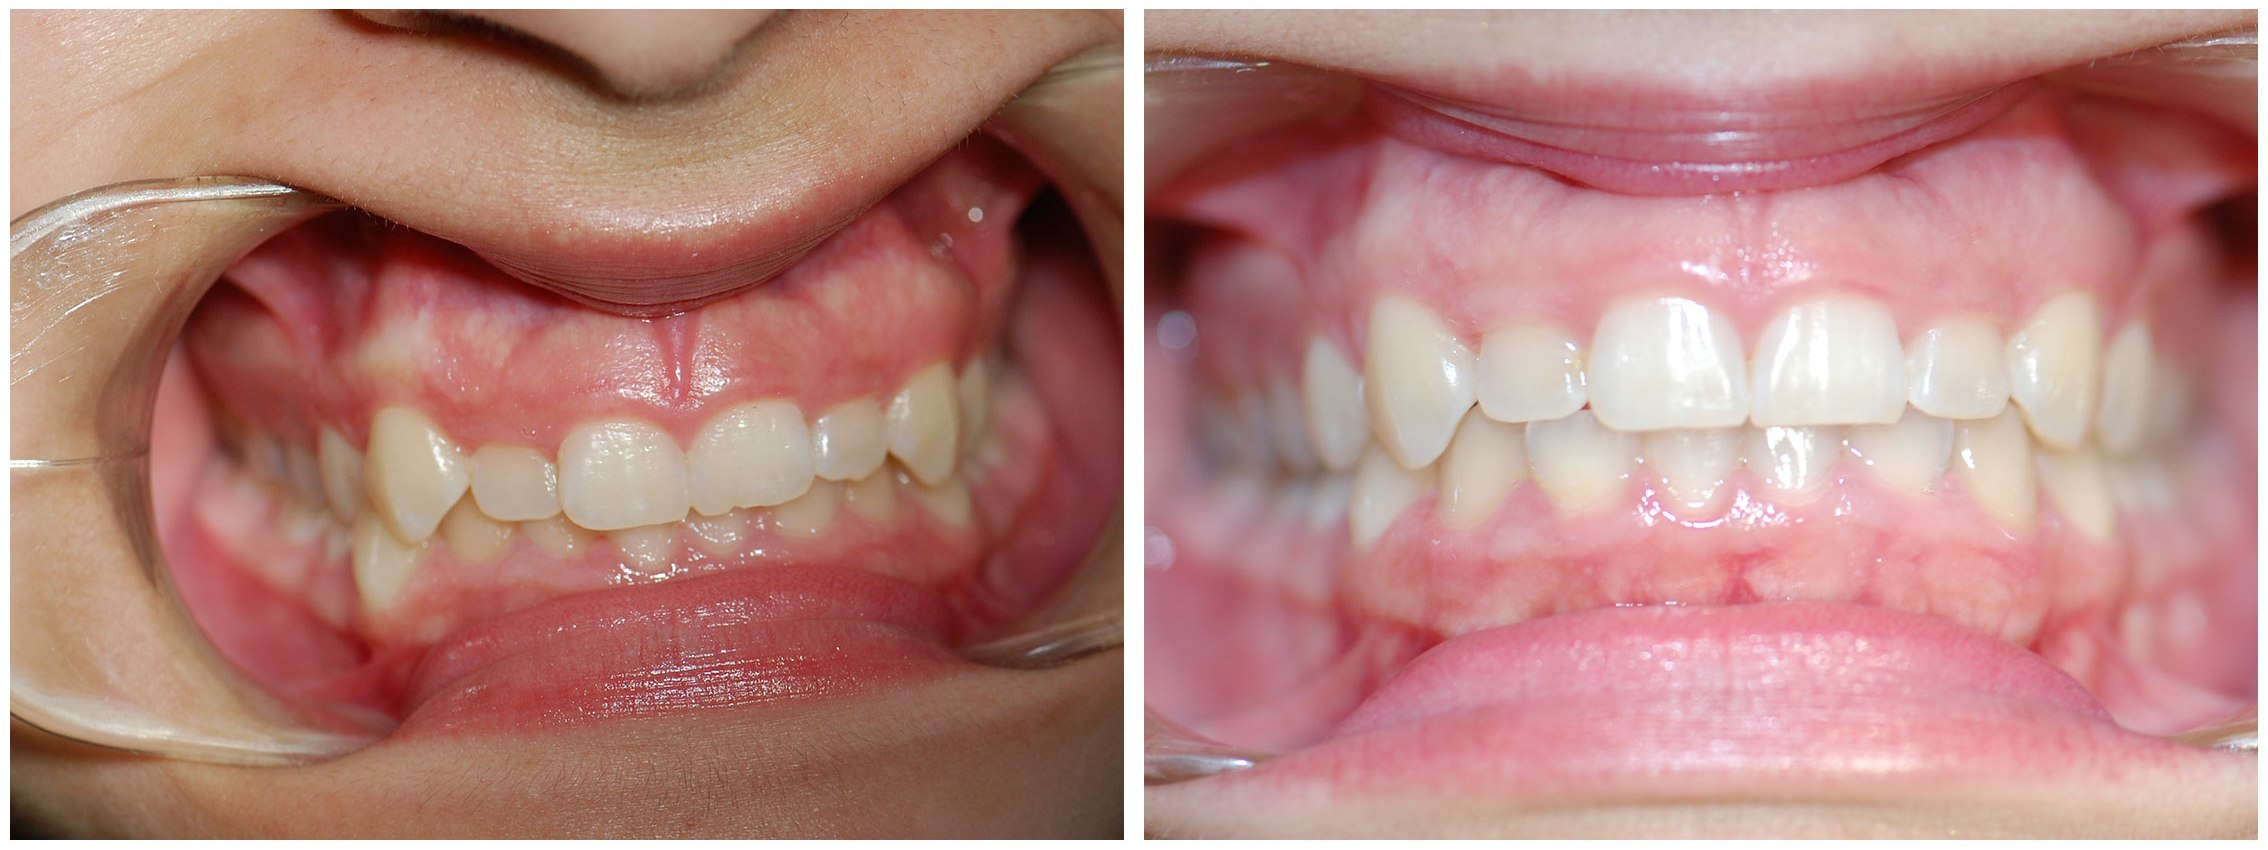 Periodontic Dental Braces Treatment Before & After